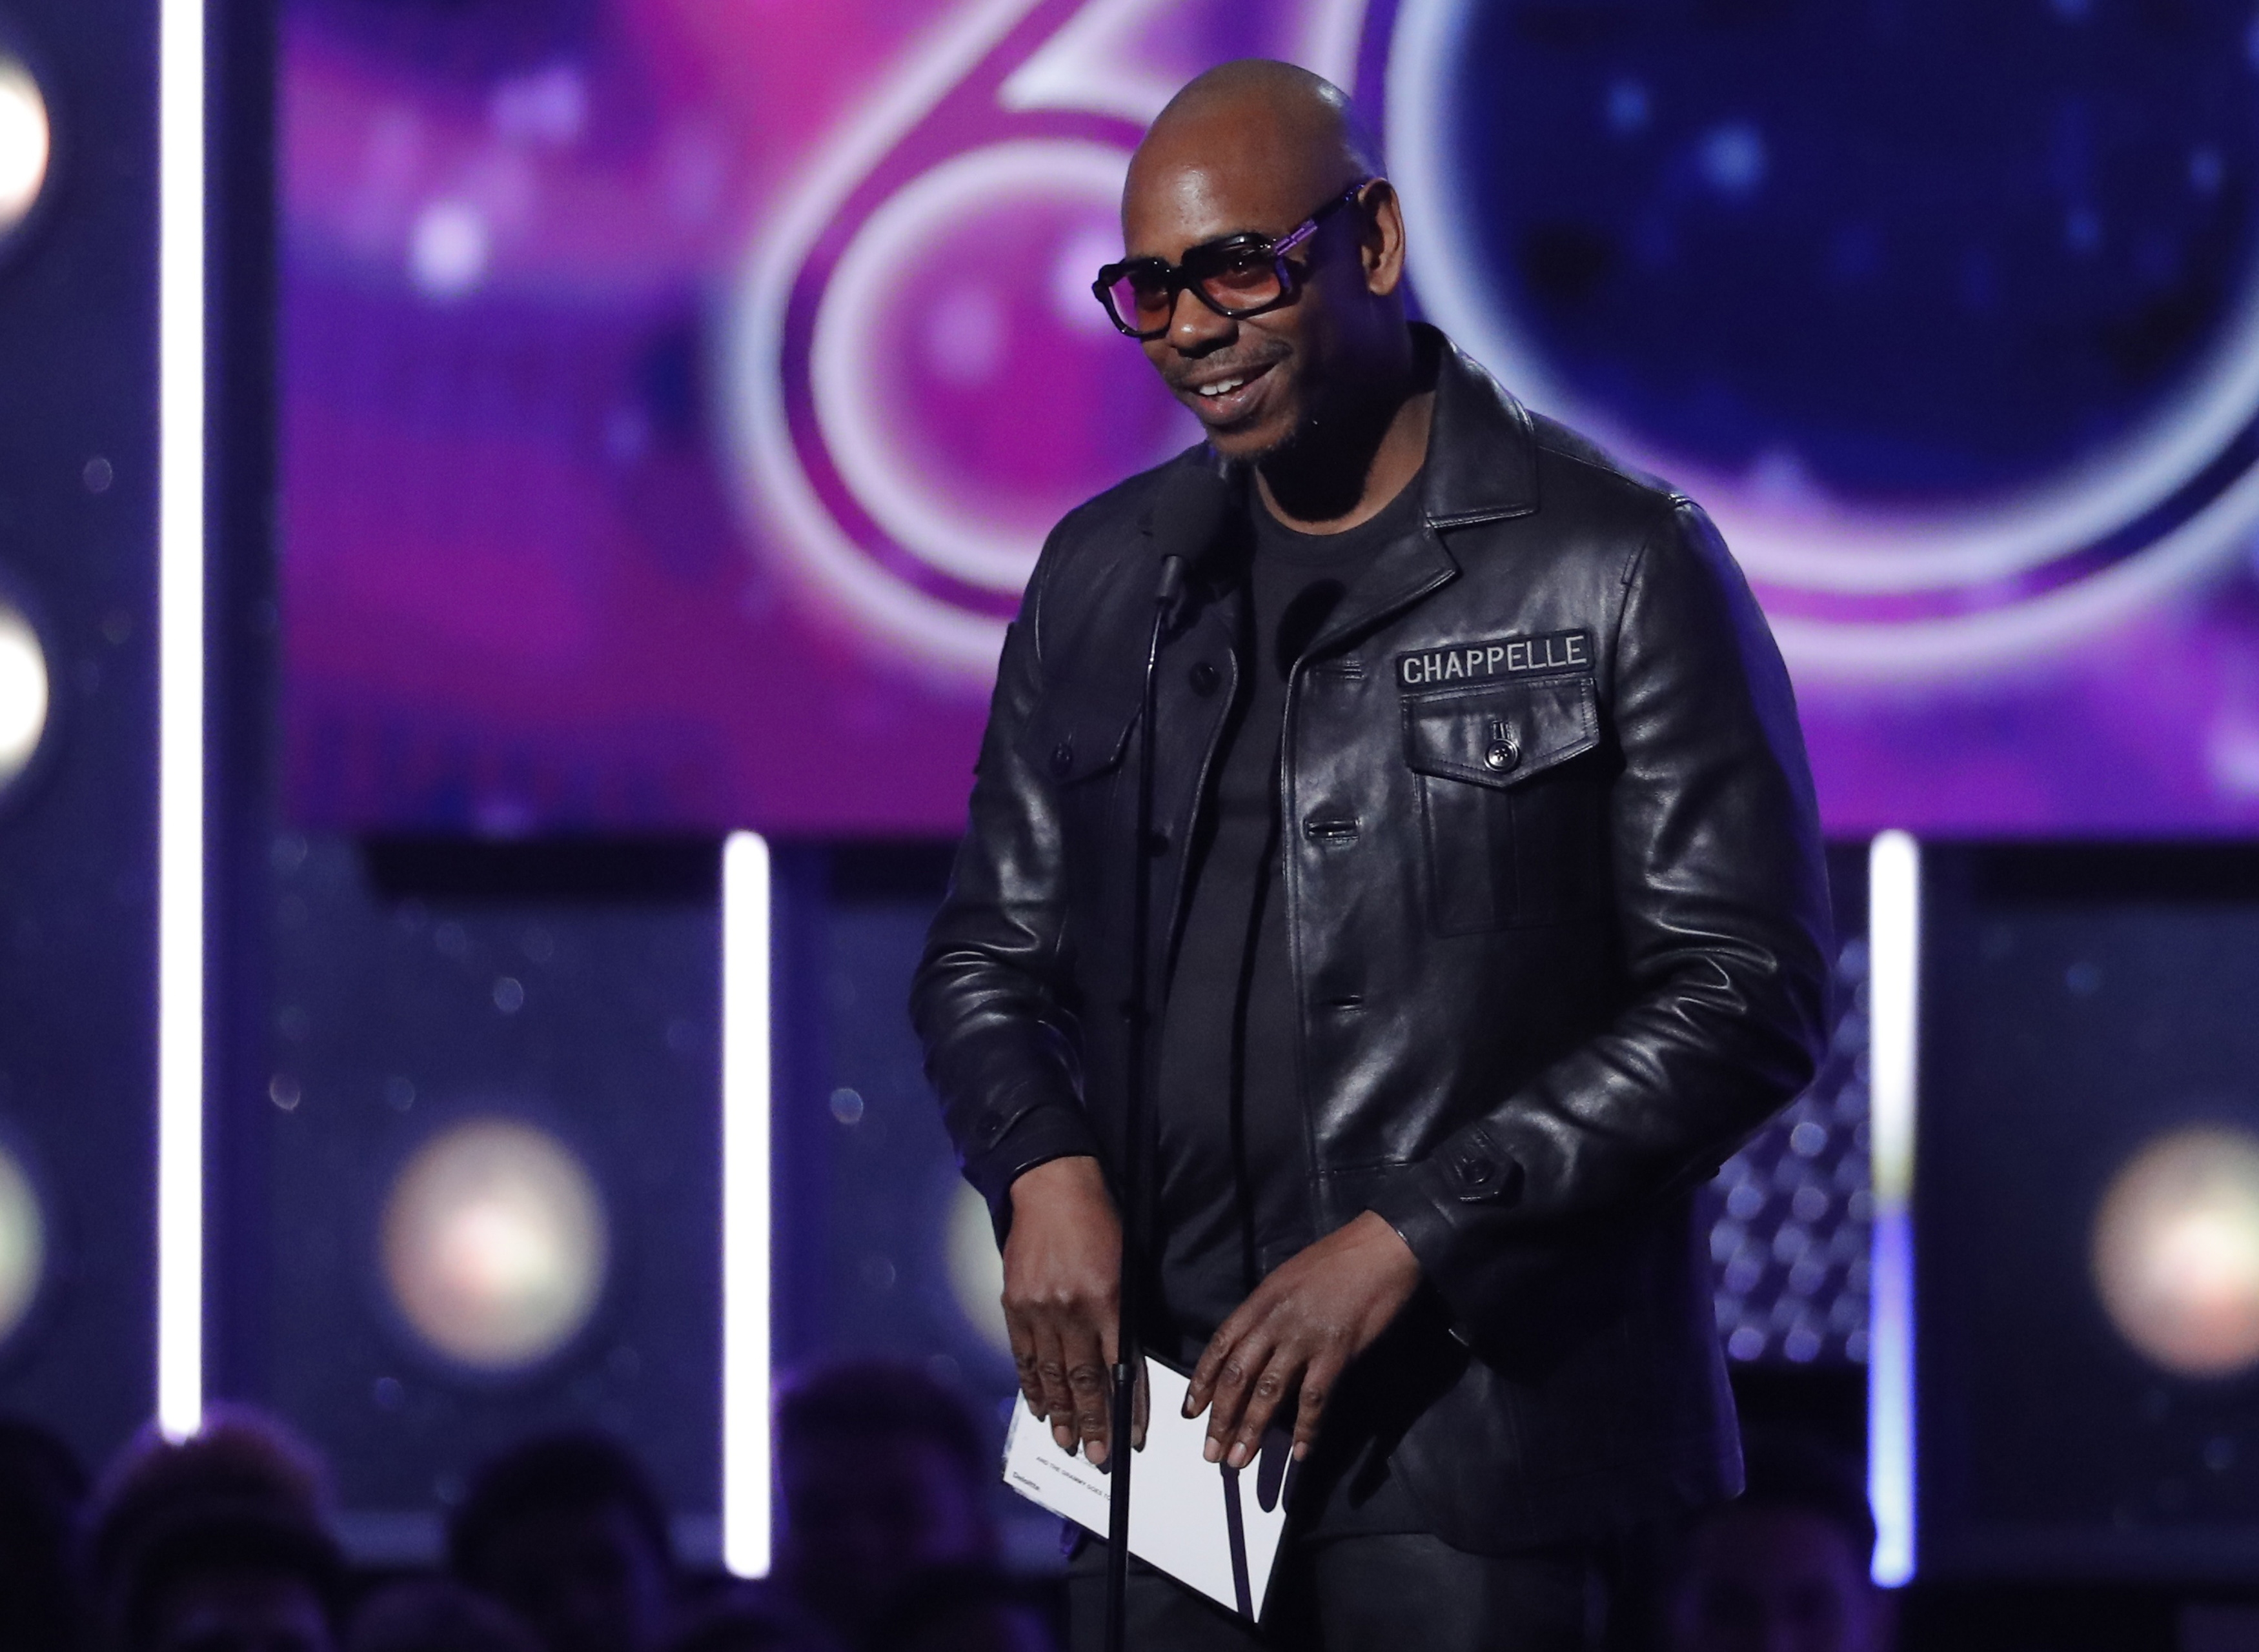 Dave Chappelle Faces Backlash From Many On The Left For His